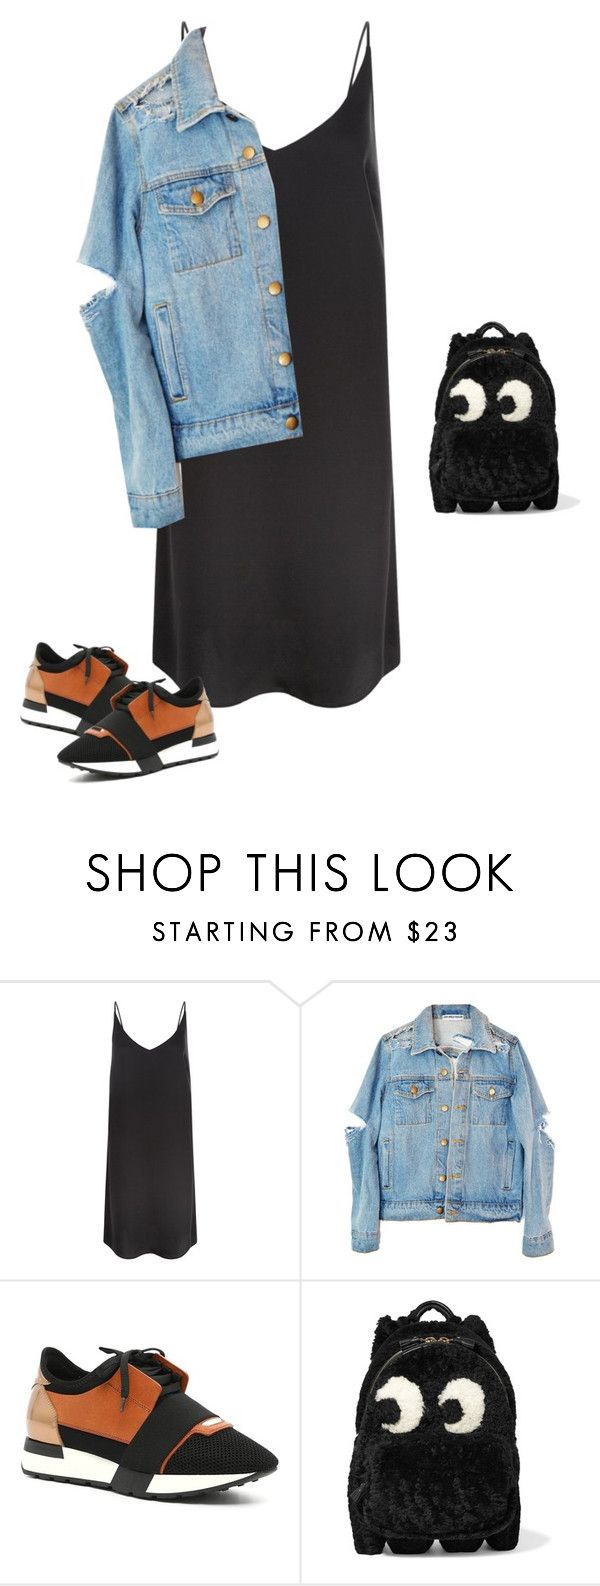 """Untitled #1956"" by quaybrooks ❤ liked on Polyvore featuring New Look, Balenciaga and Anya Hindmarch"